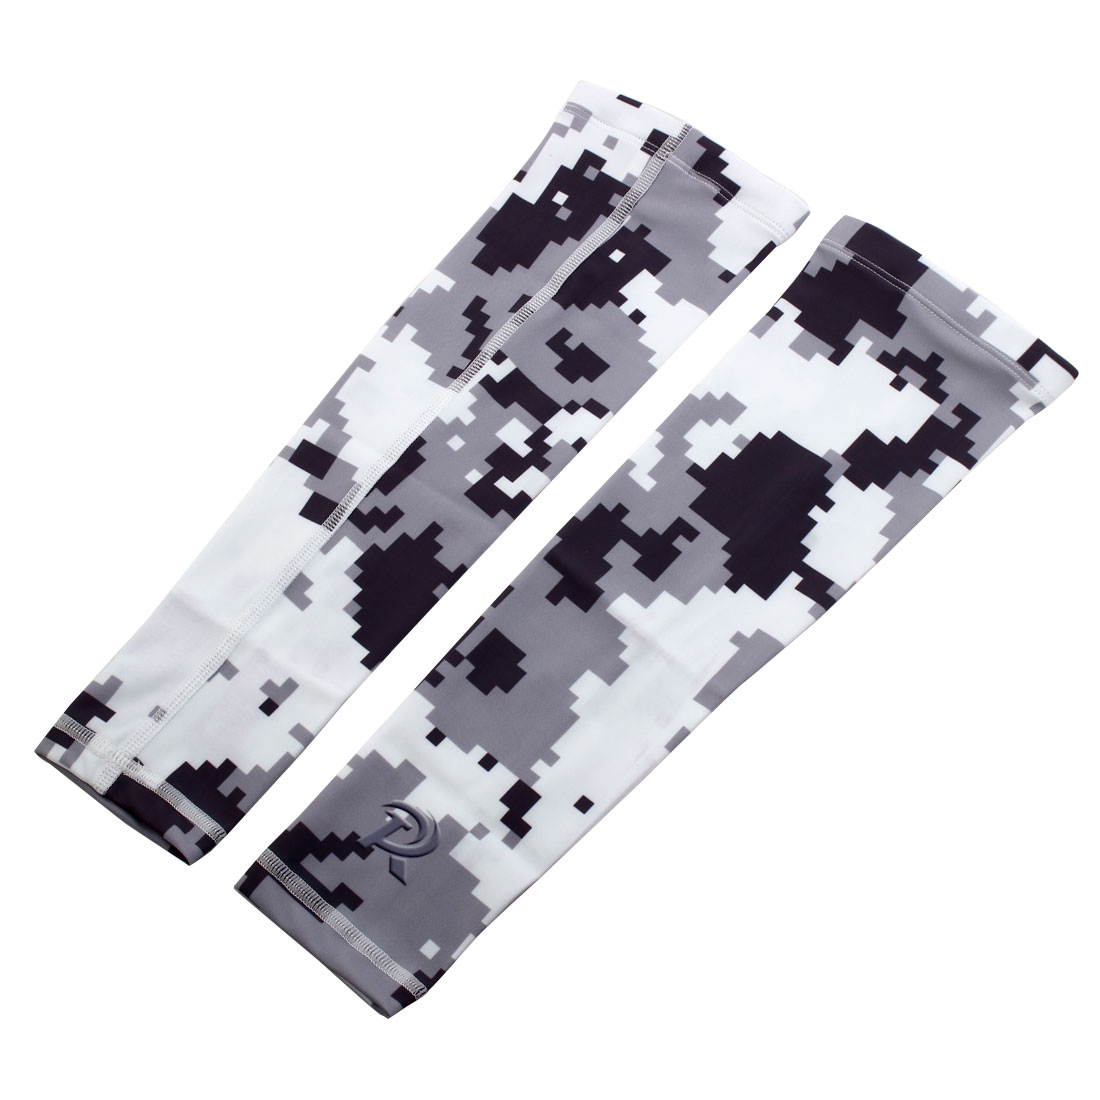 Sports Elbow Brace Wrap Sweat-absorption Arm Sleeves Support Camouflage XL Pair - image 5 de 5